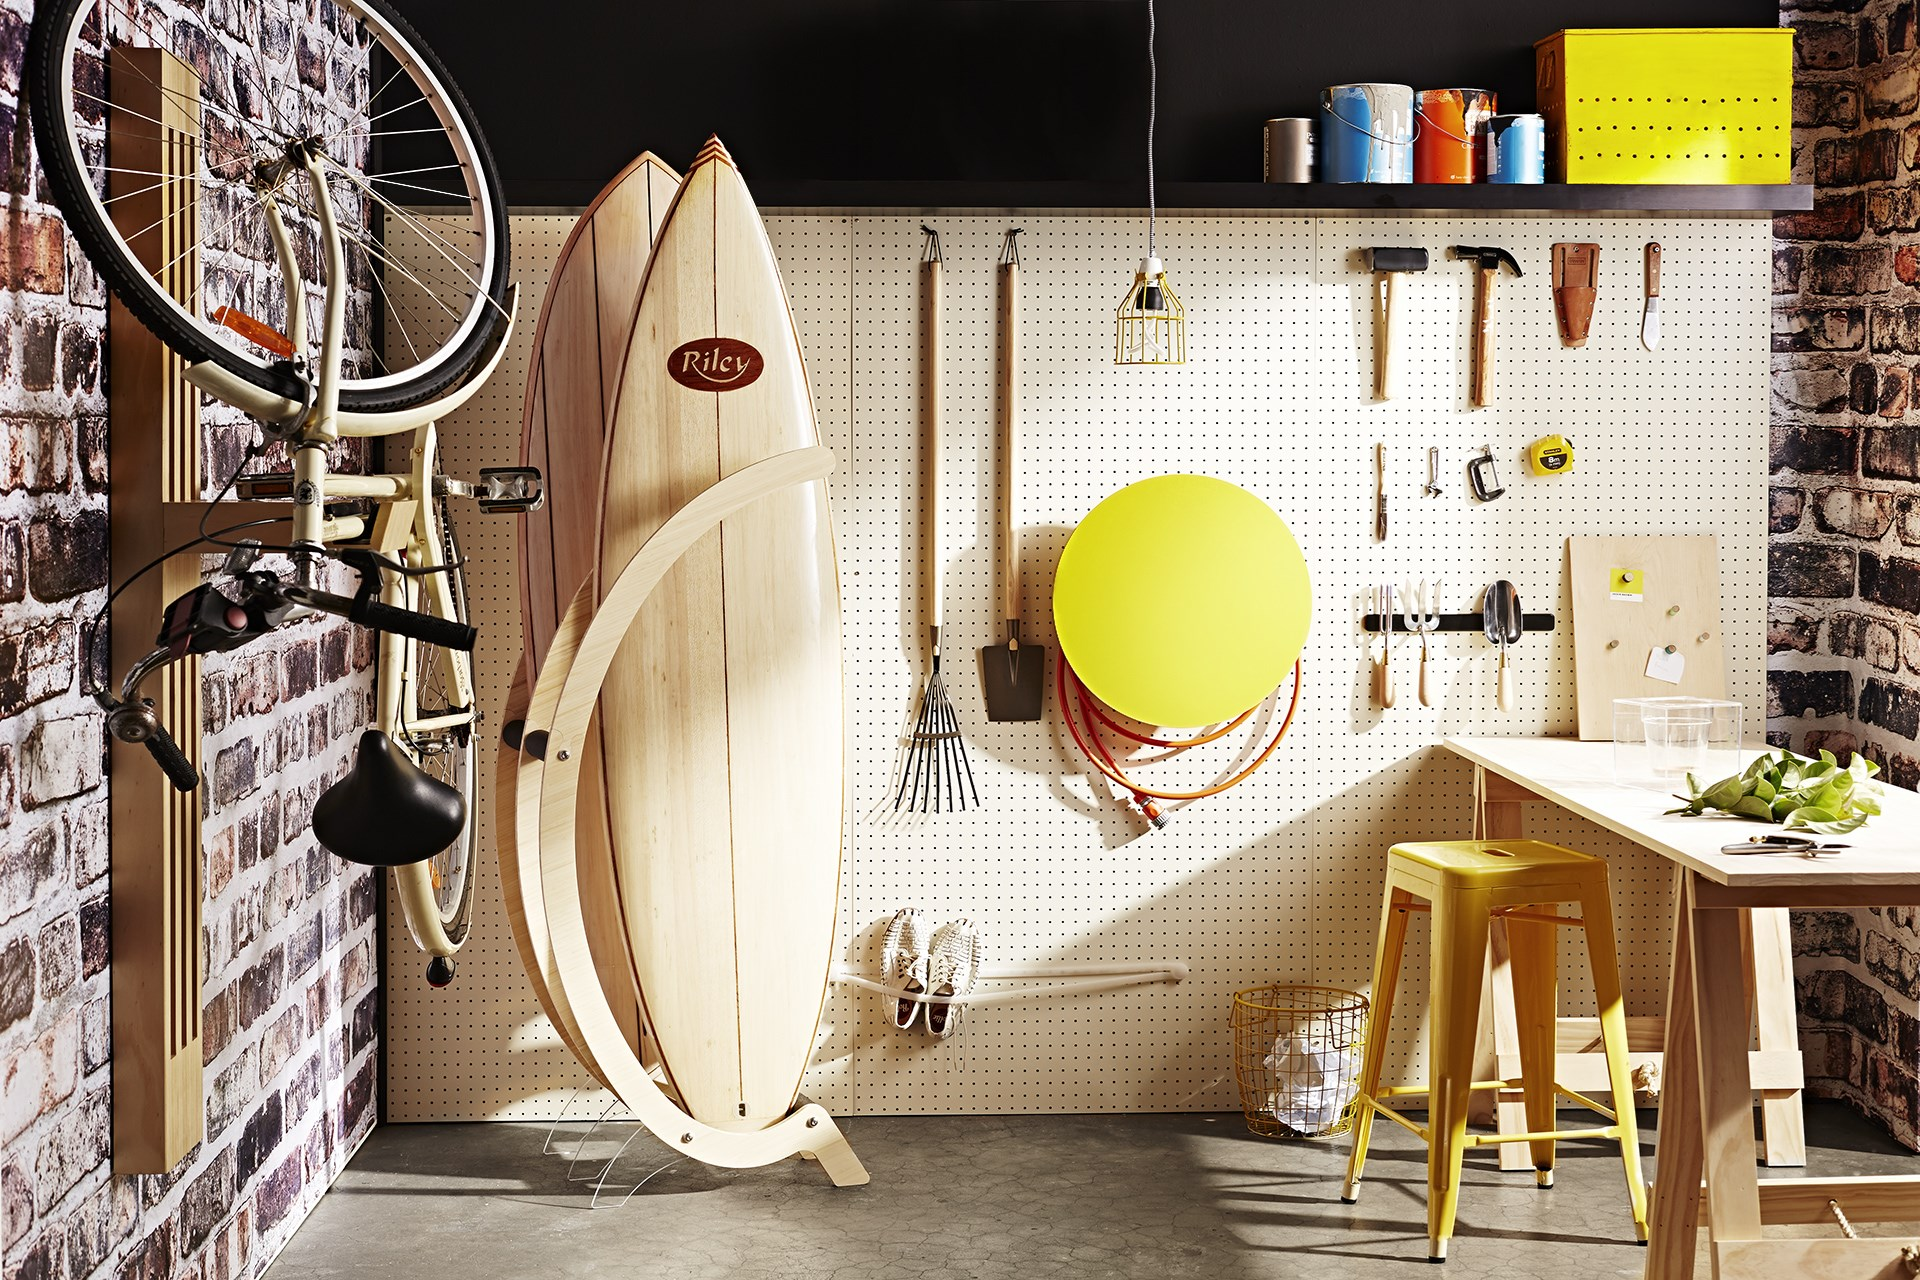 """Get your garage organised with [ingenious storage solutions](http://www.homestolove.com.au/space-saving-garage-storage-solutions-1611